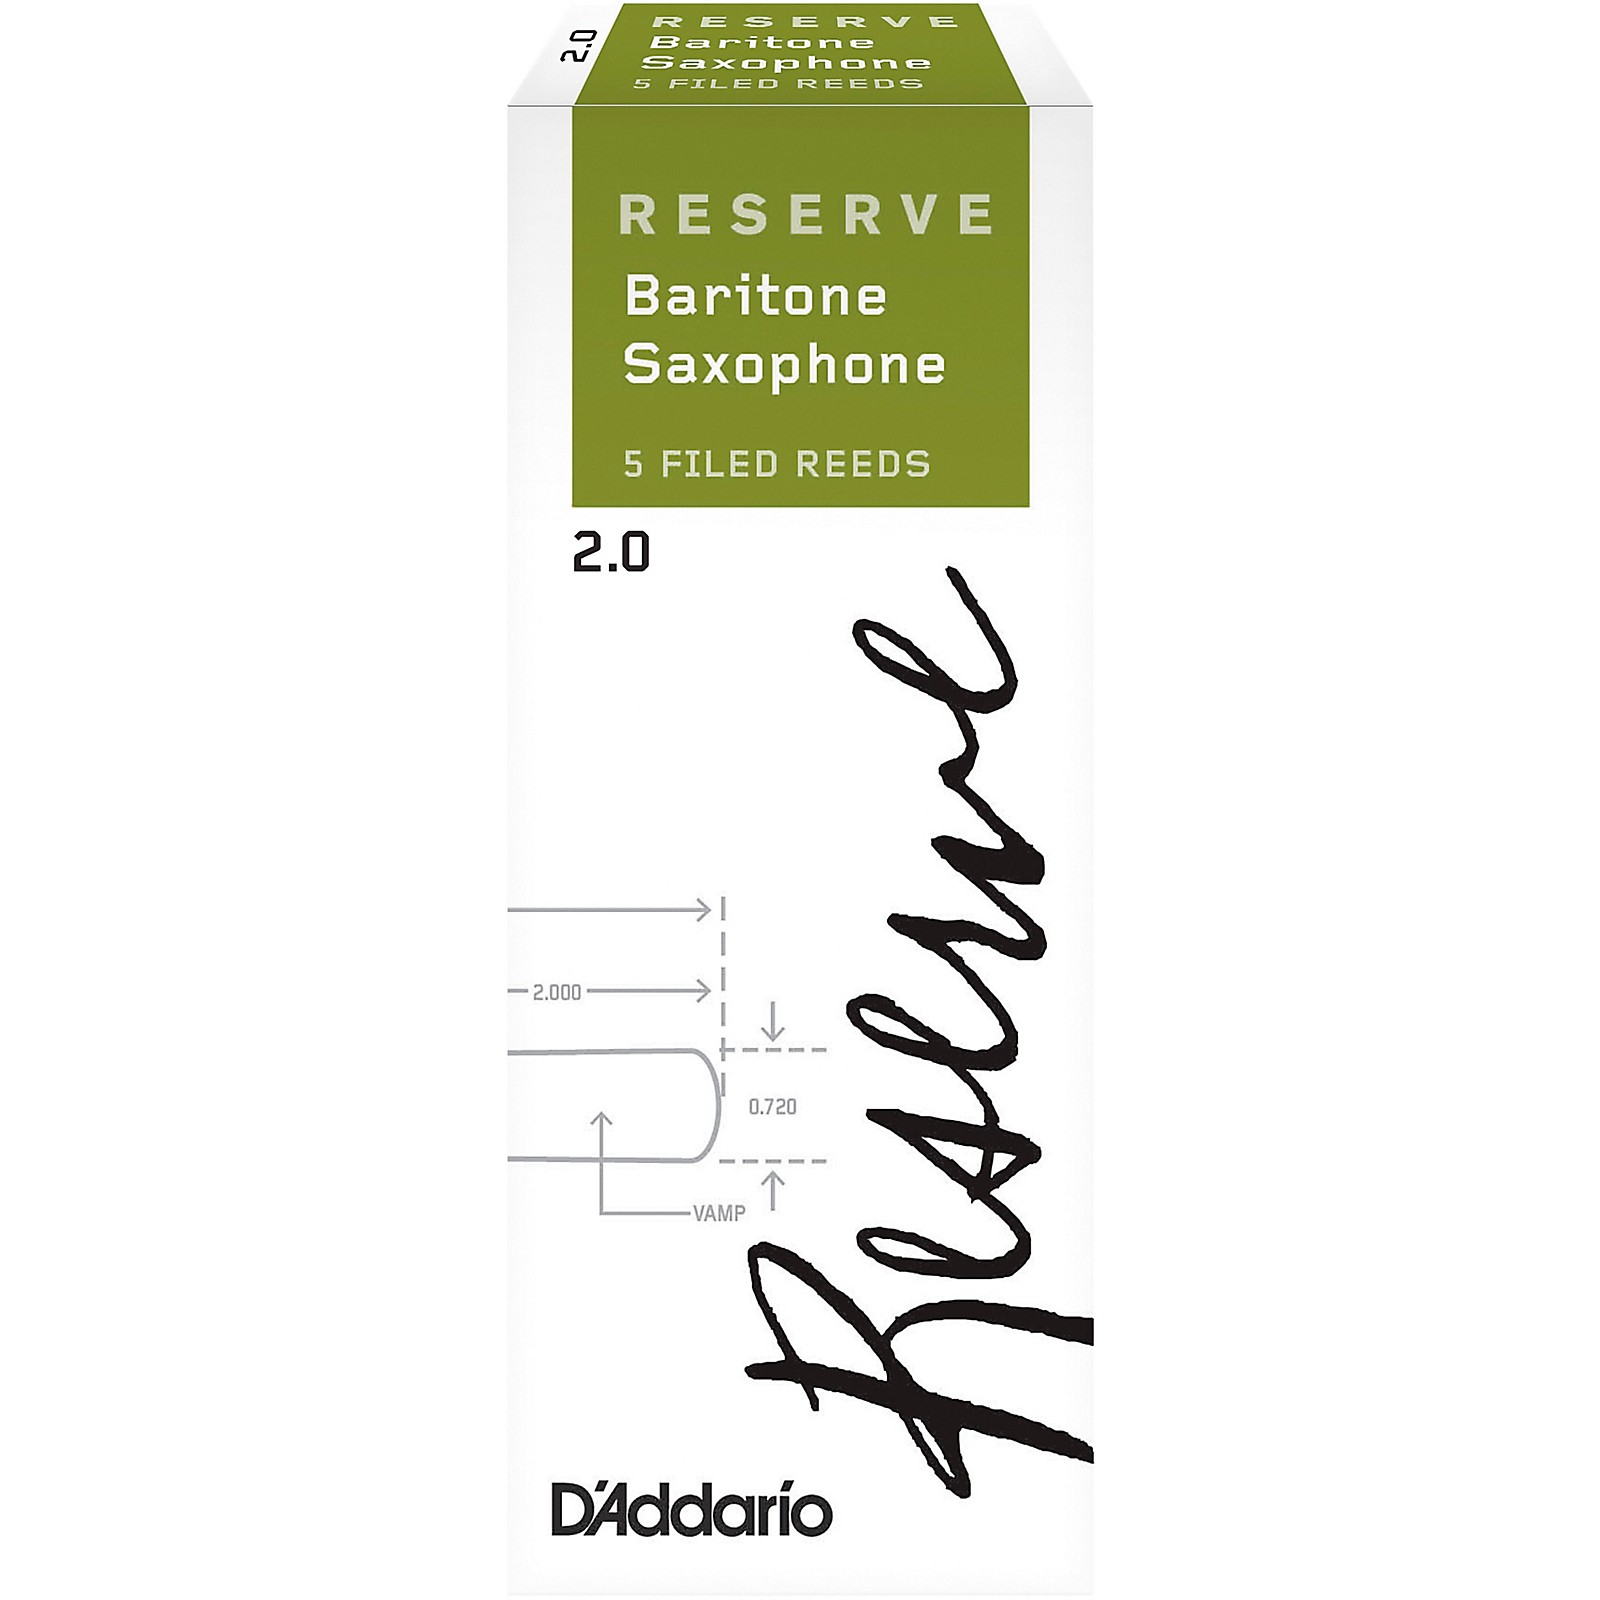 D'Addario Woodwinds Reserve Baritone Saxophone Reeds, 5-Pack